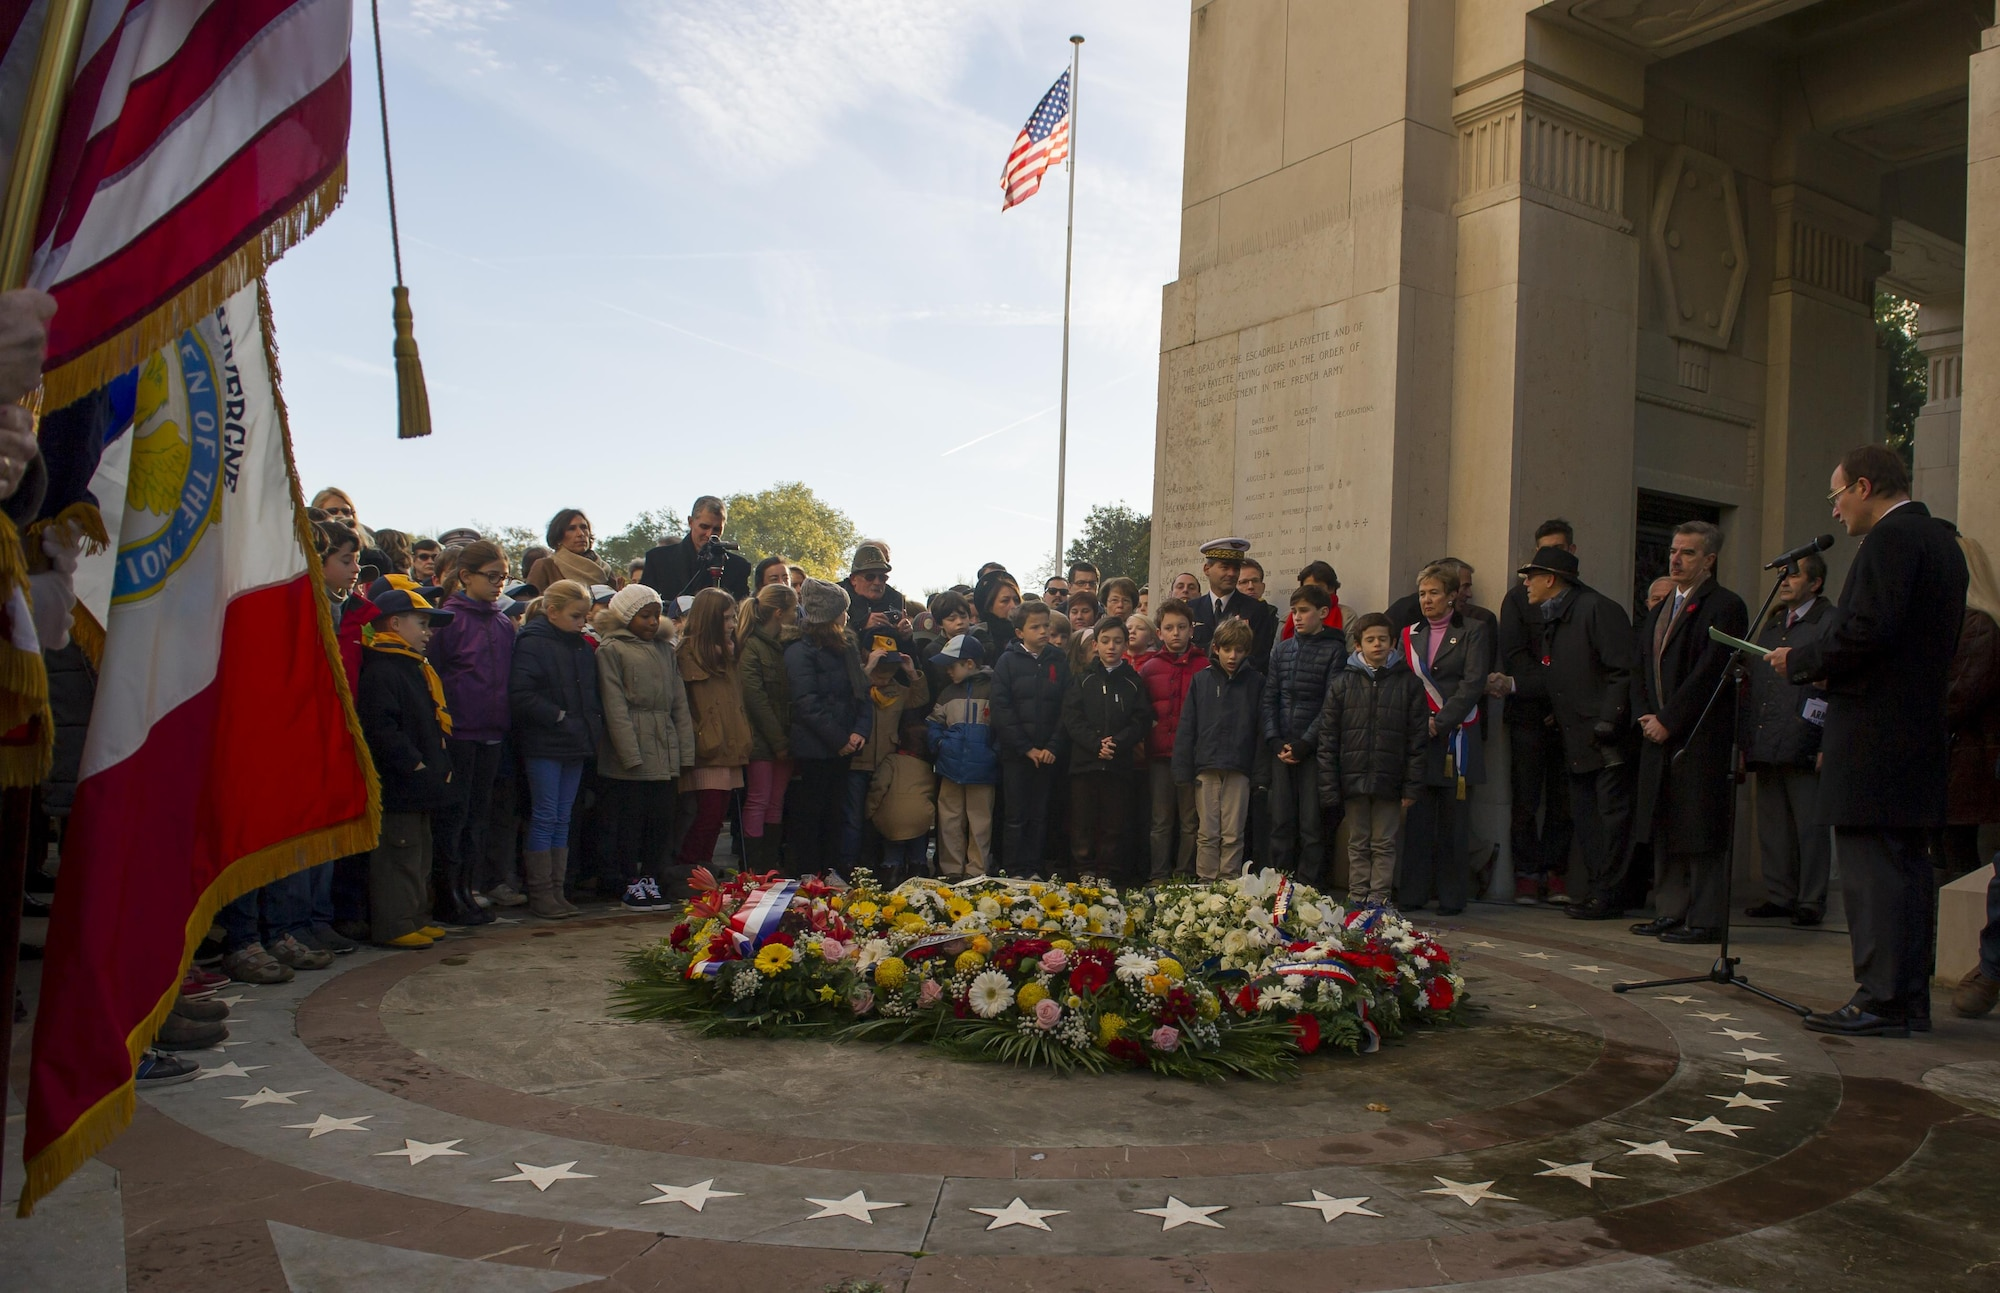 People listen to the closing remarks of a Veteran's Day ceremony at the Lafayette Escadrille memorial in Marnes-la-Coquette, France Nov. 11, 2013. Lafayette Escadrille was a French Air Service squadron during World War I comprised largely of volunteer American fighter pilots.